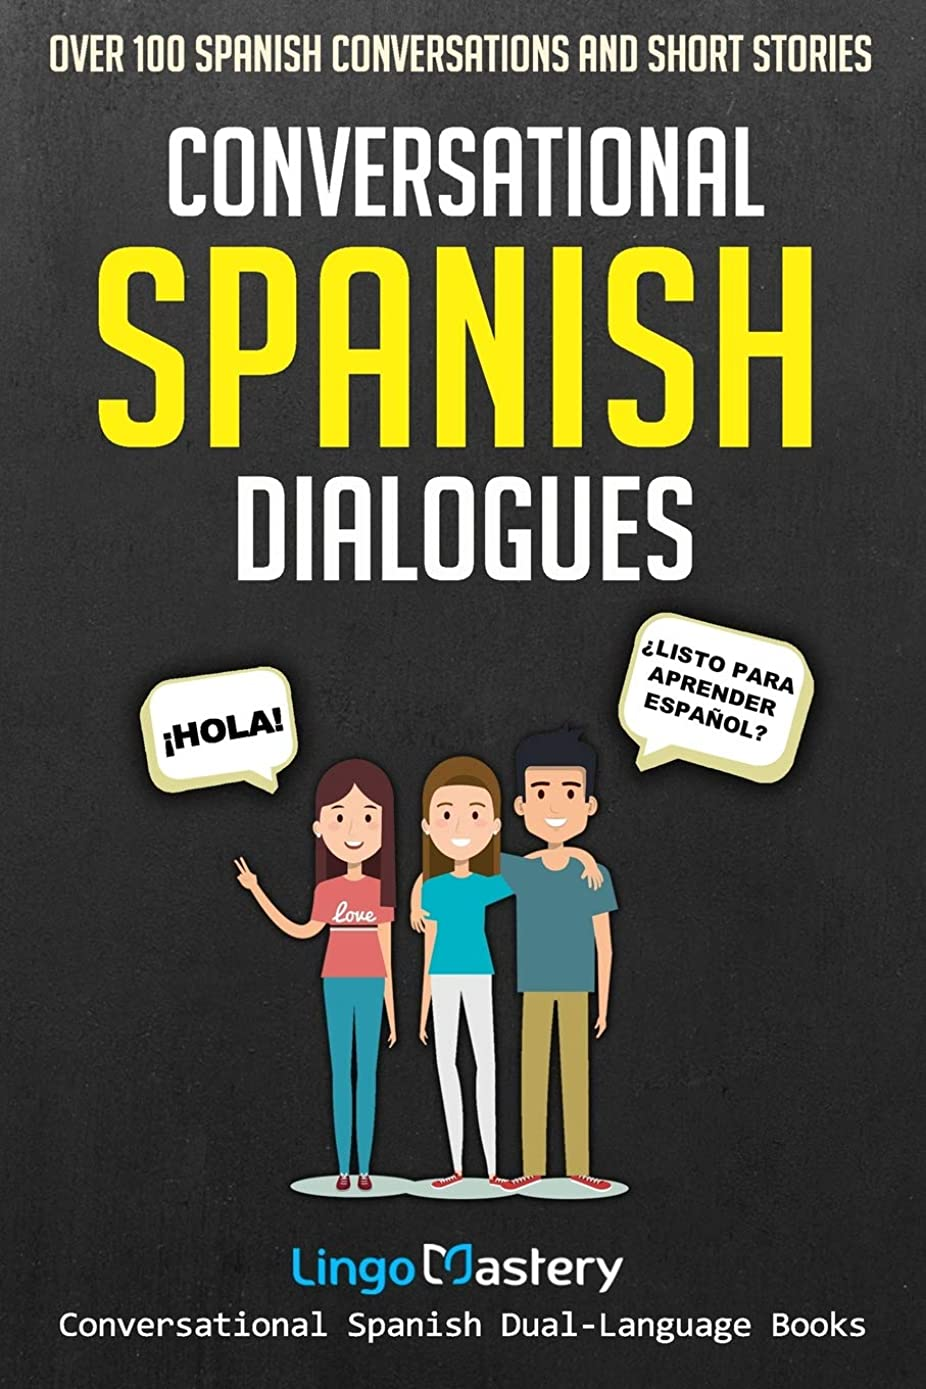 クック被害者無法者Conversational Spanish Dialogues: Over 100 Spanish Conversations and Short Stories (Conversational Spanish Dual Language Books)